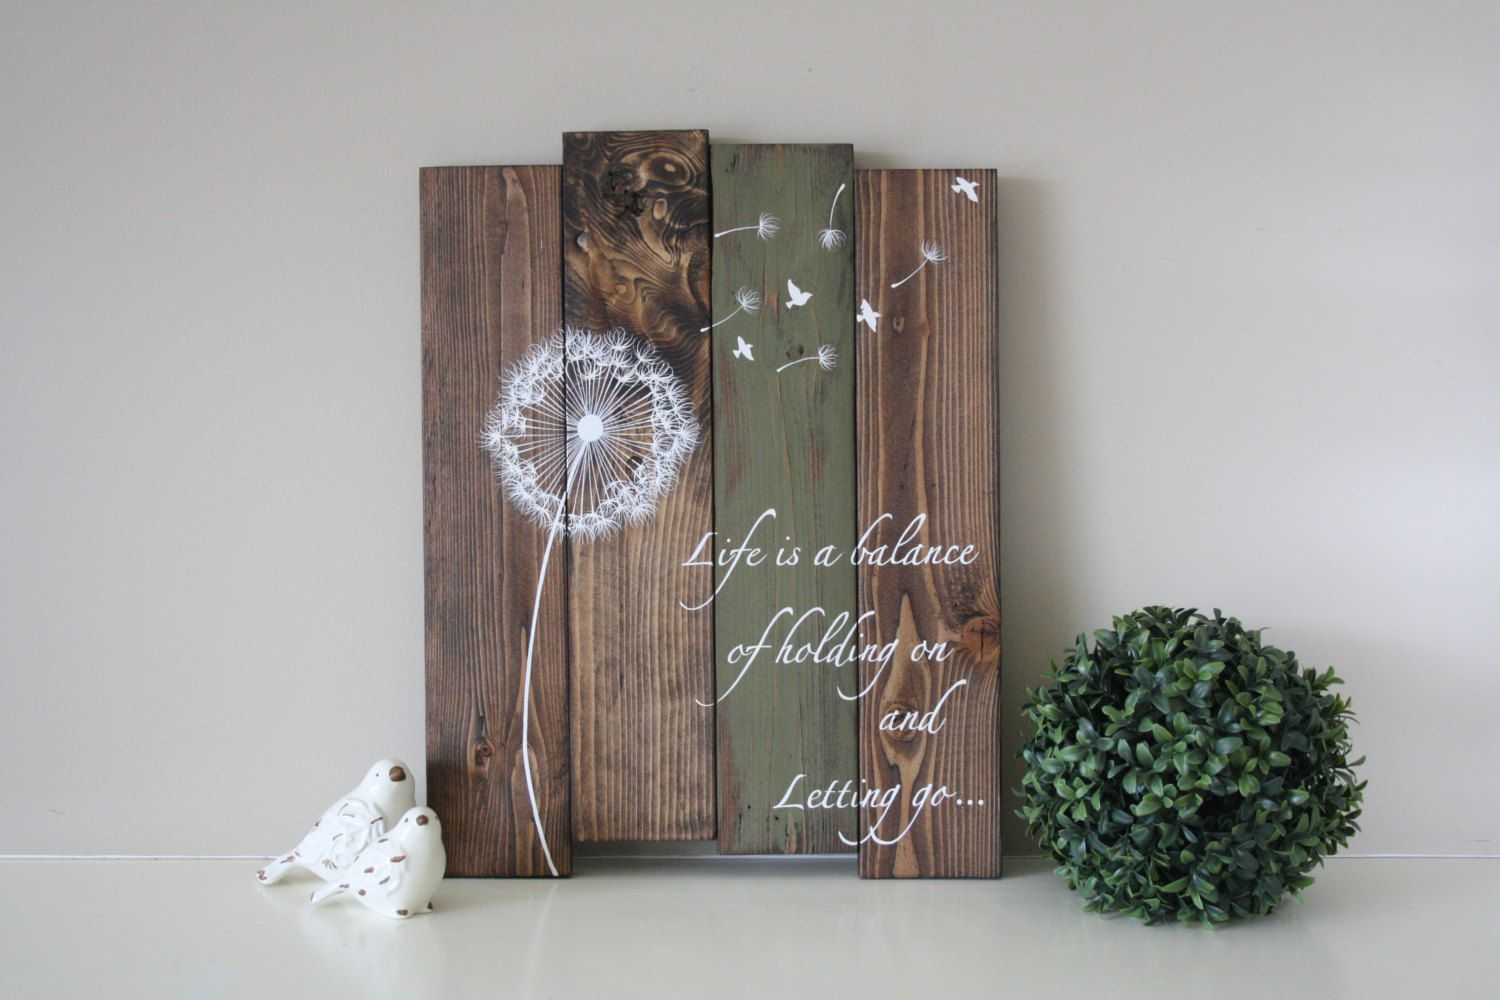 Reclaimed wood wall art life is a balance of holding on and